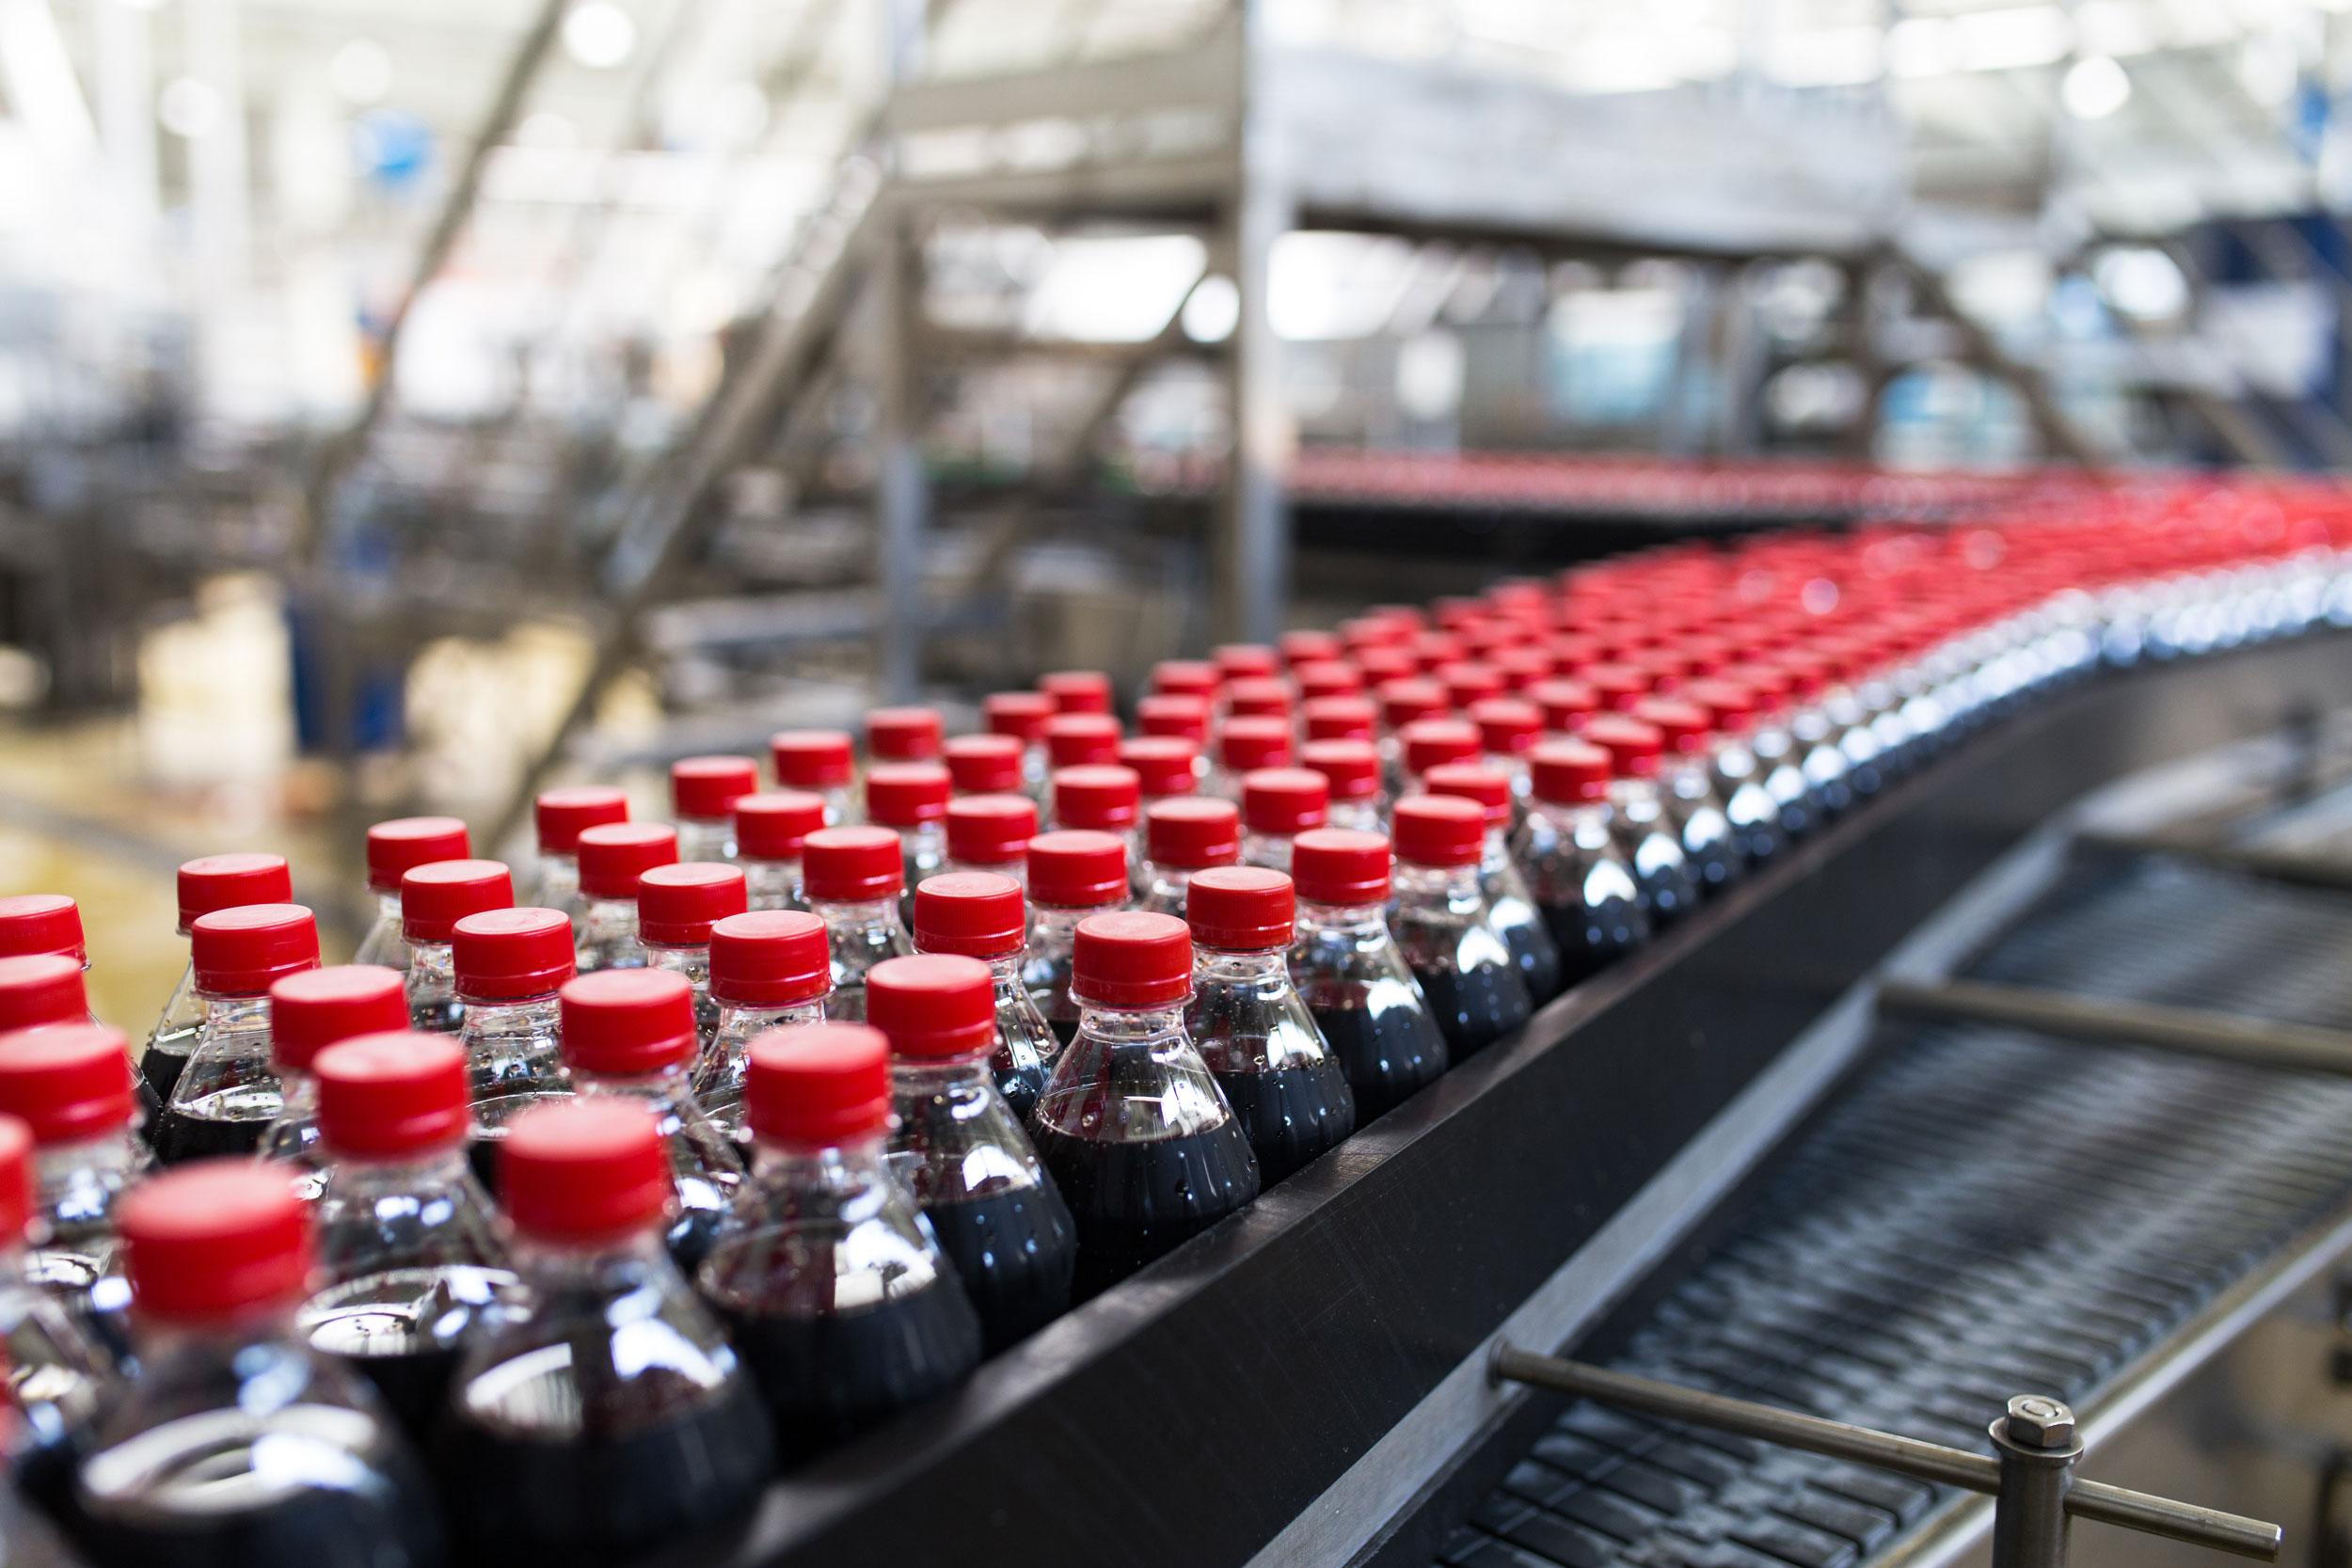 Putting Bubbles into Soft Drinks Production